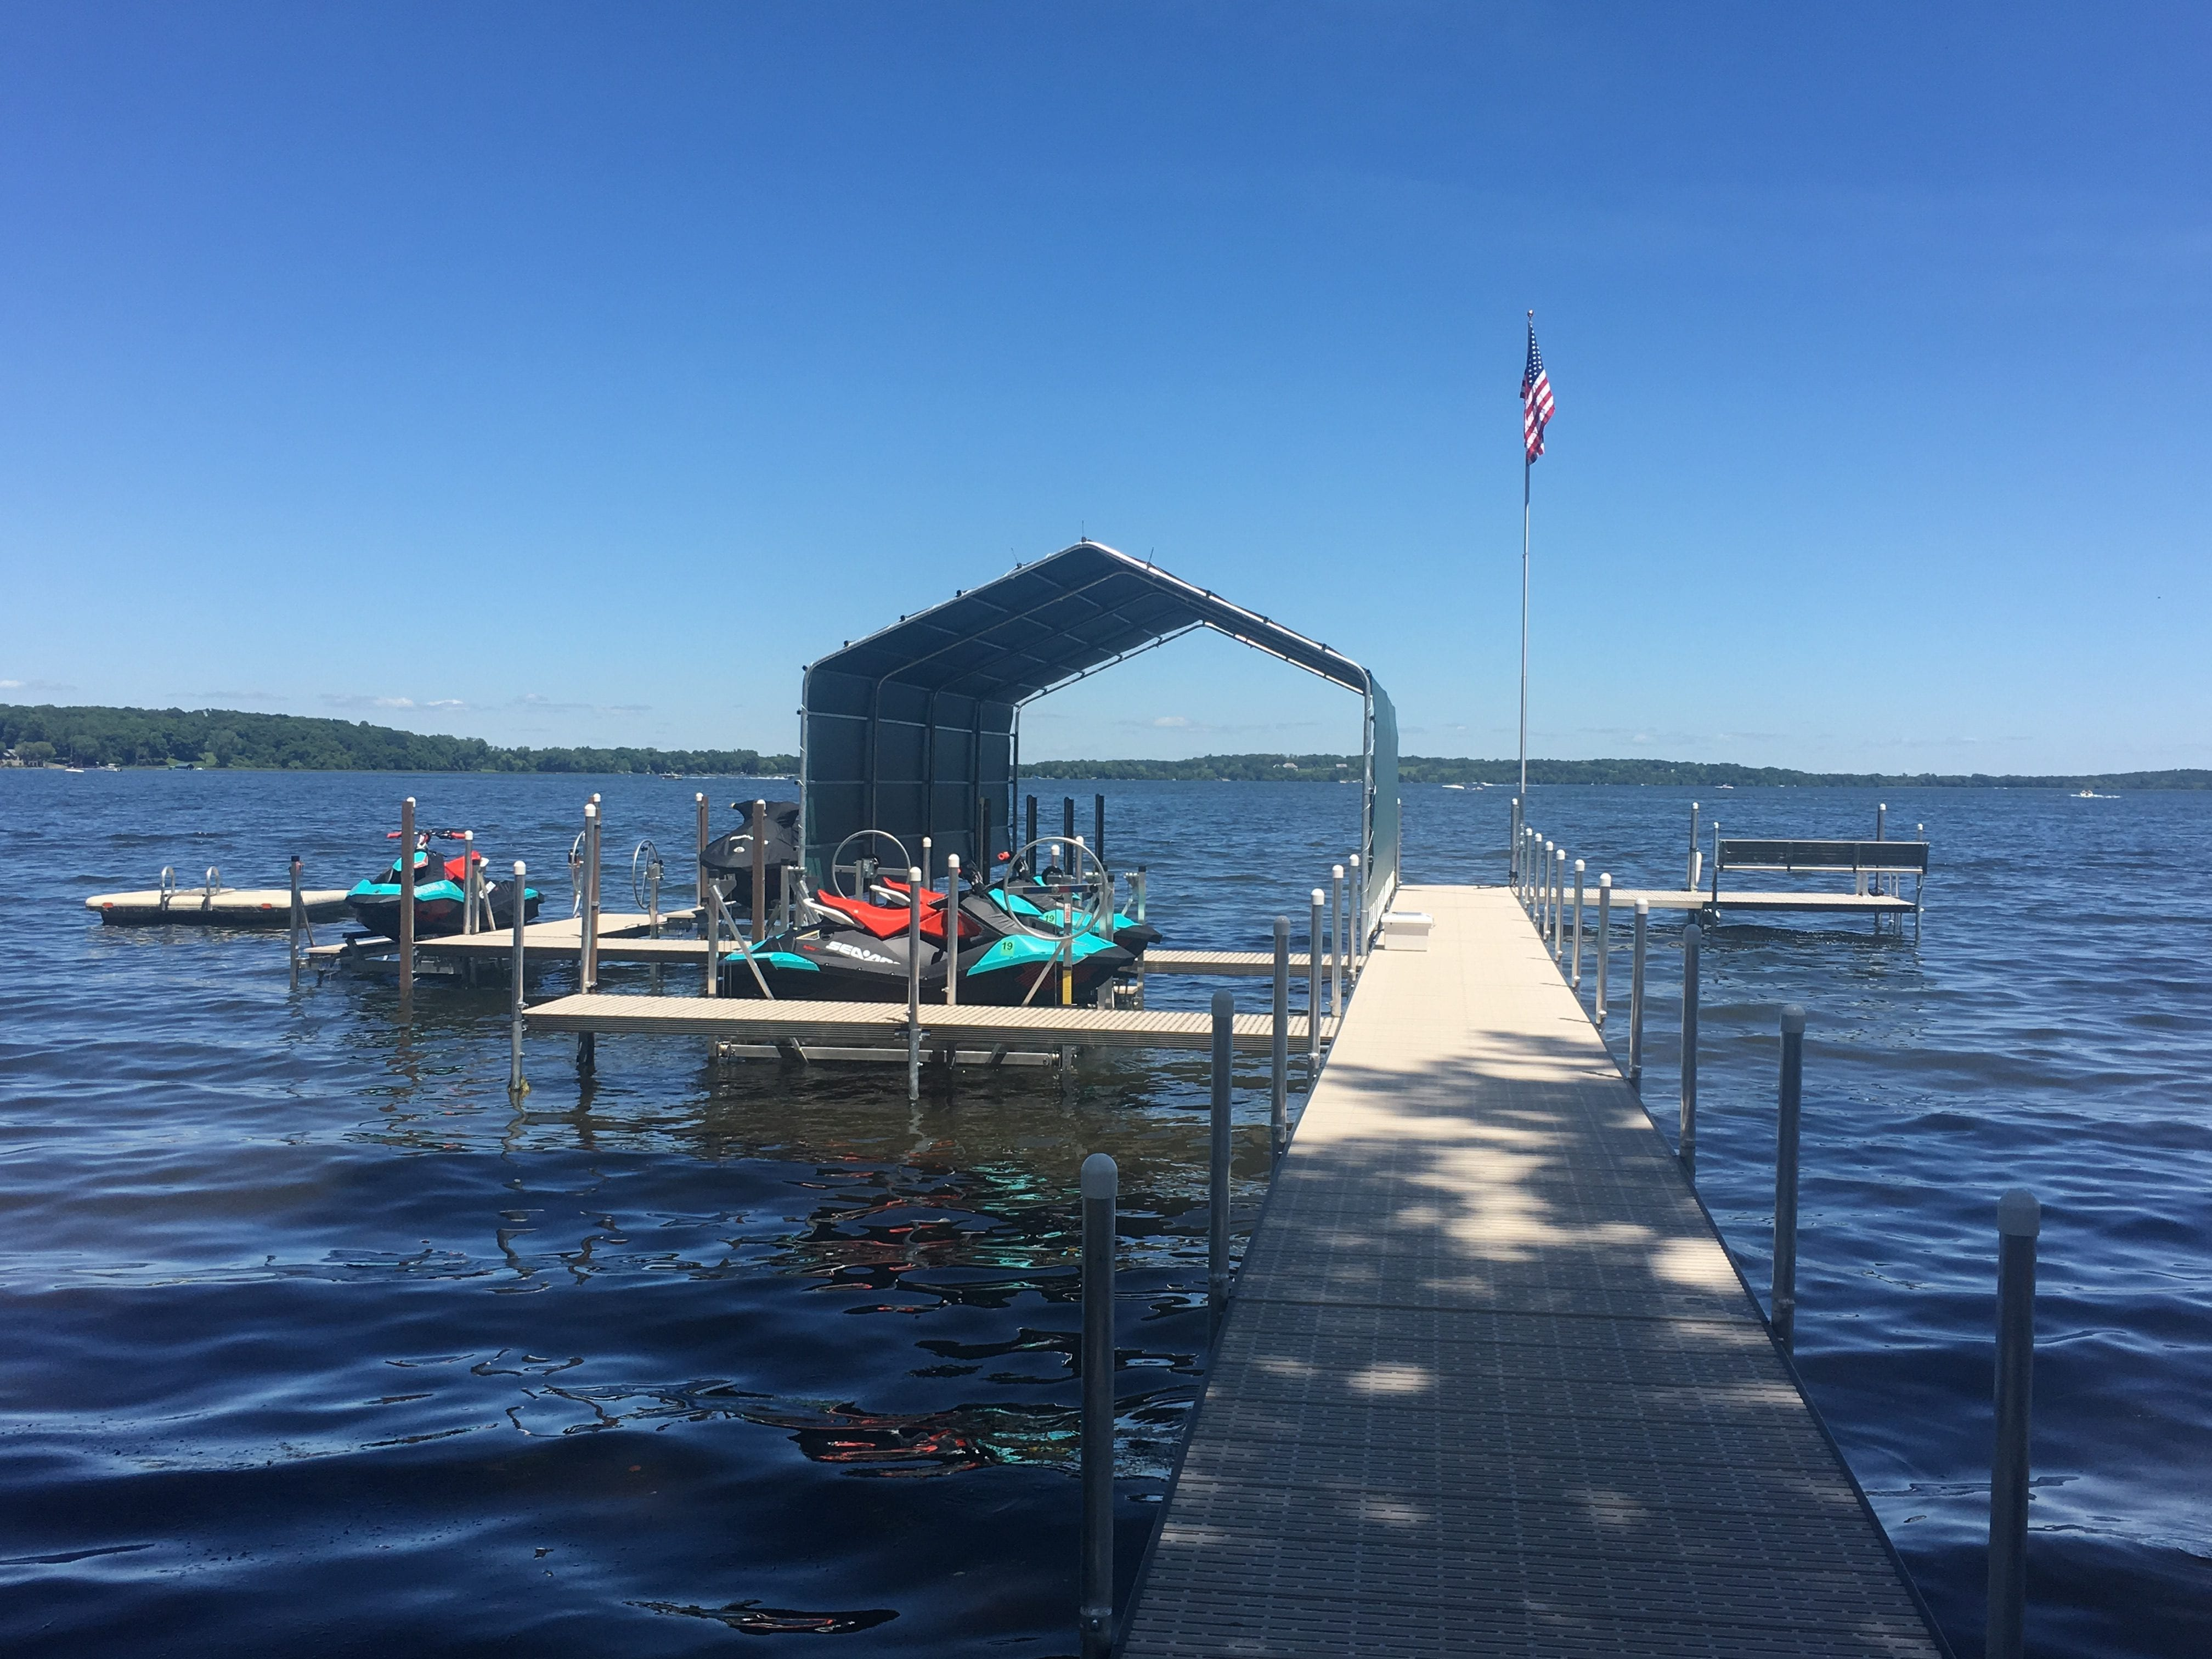 Lake Minnetonka Docks and Boathouses | Niccum Docks *Official*